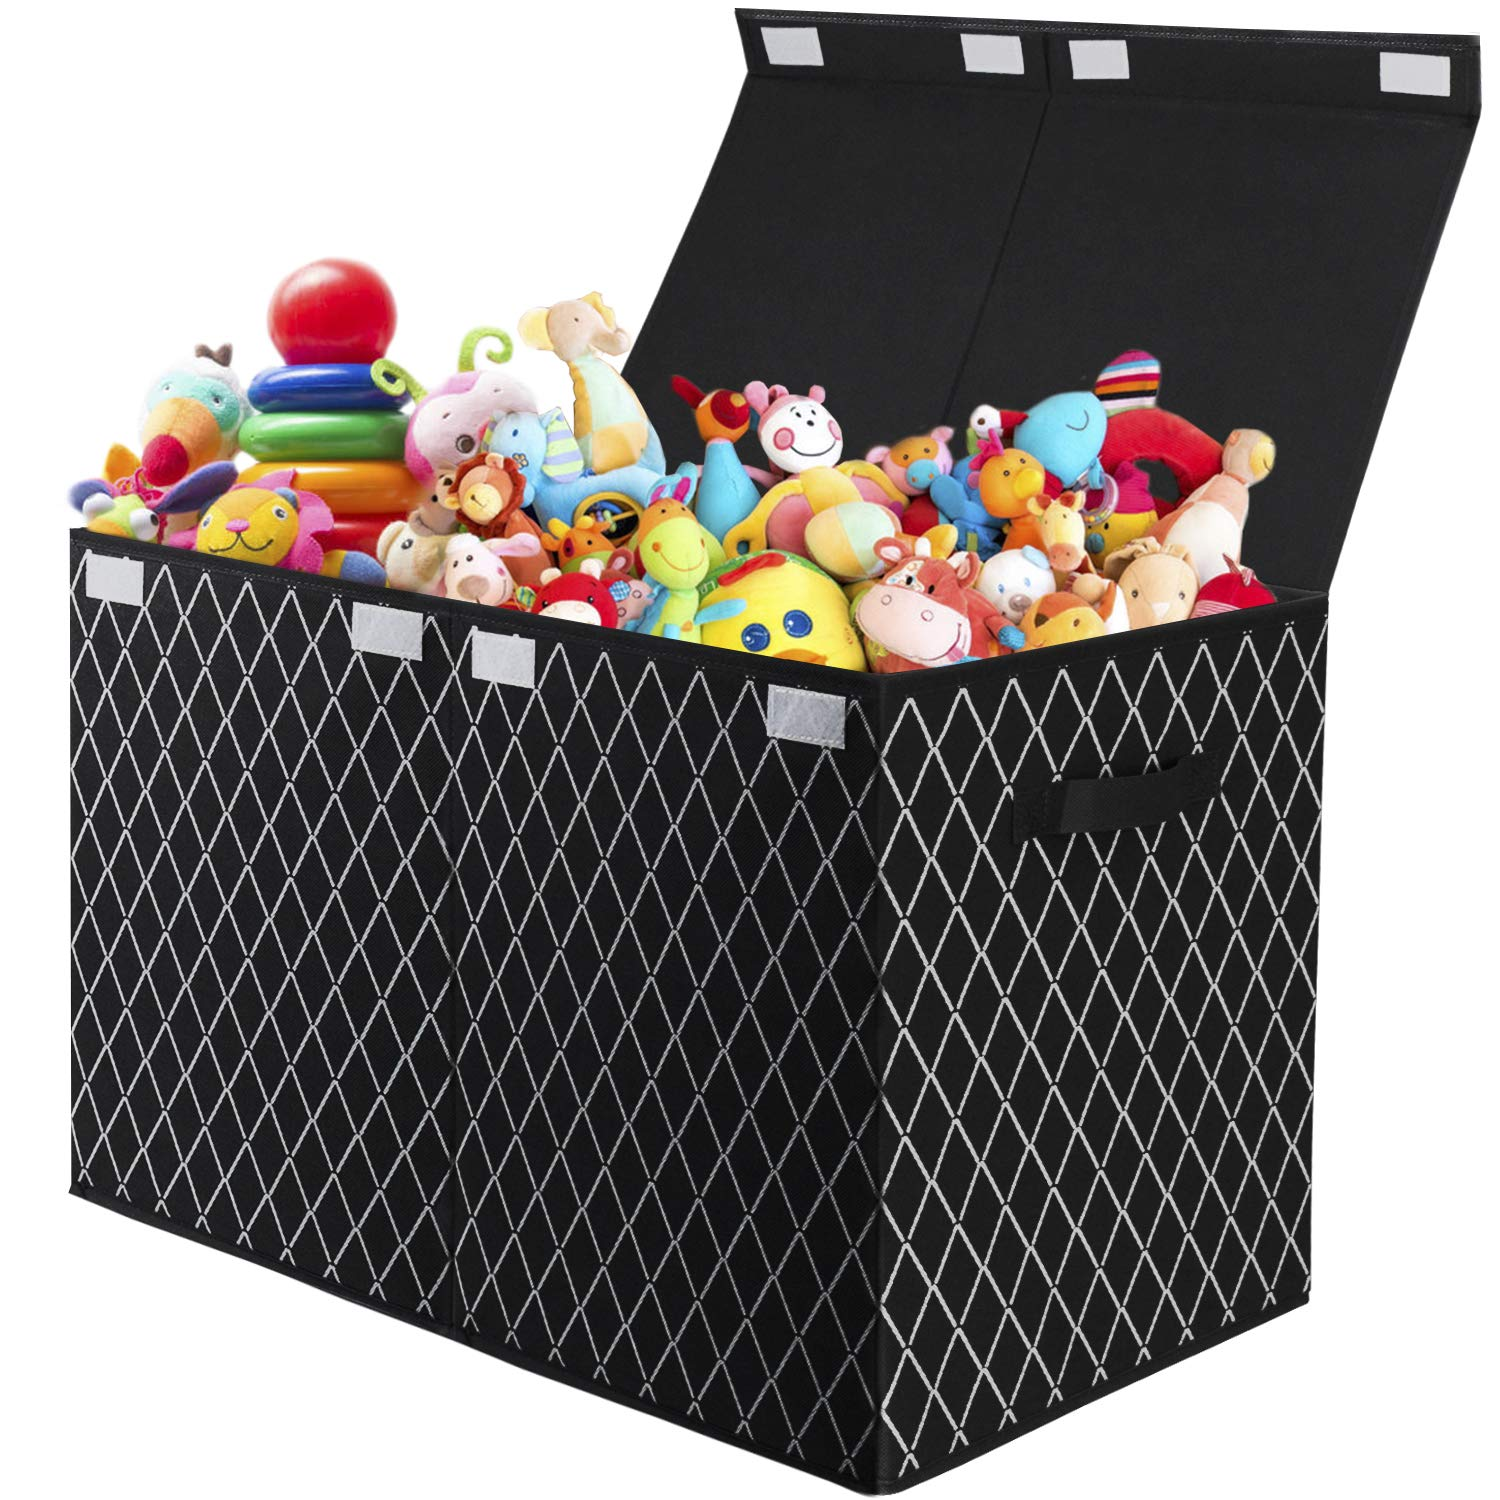 Kids Toy Box Chest Storage with Flip-Top Lid - Collapsible Sturdy Toys Boxes Organizer Bins with Handles for Nursery,Playroom,Closet Home Organization(Black)